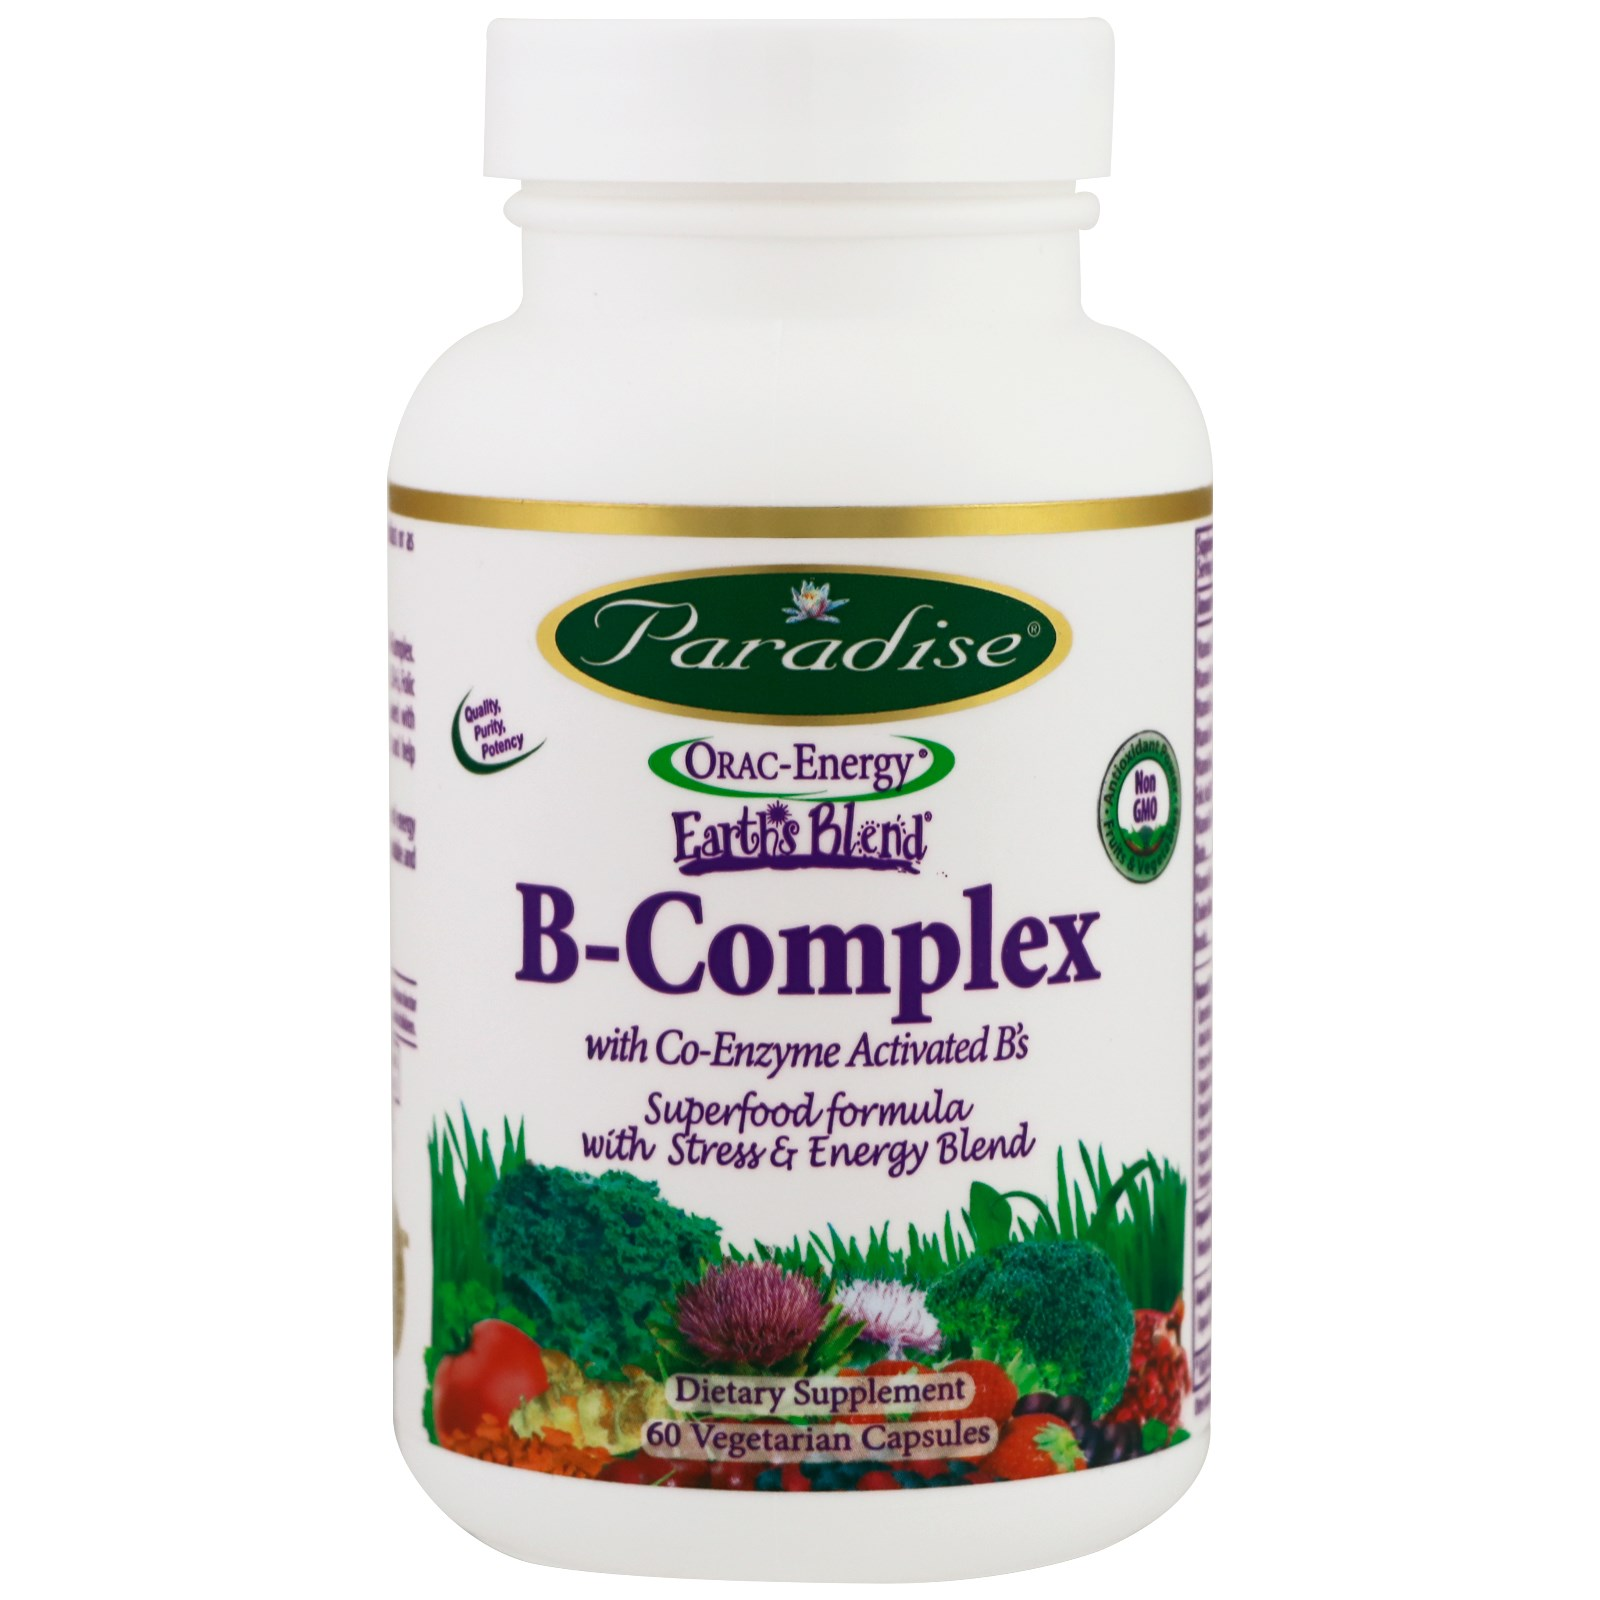 Paradise Herbs, B-complex with Co-Enzyme Activated B's, 60 Vegetarian Capsules